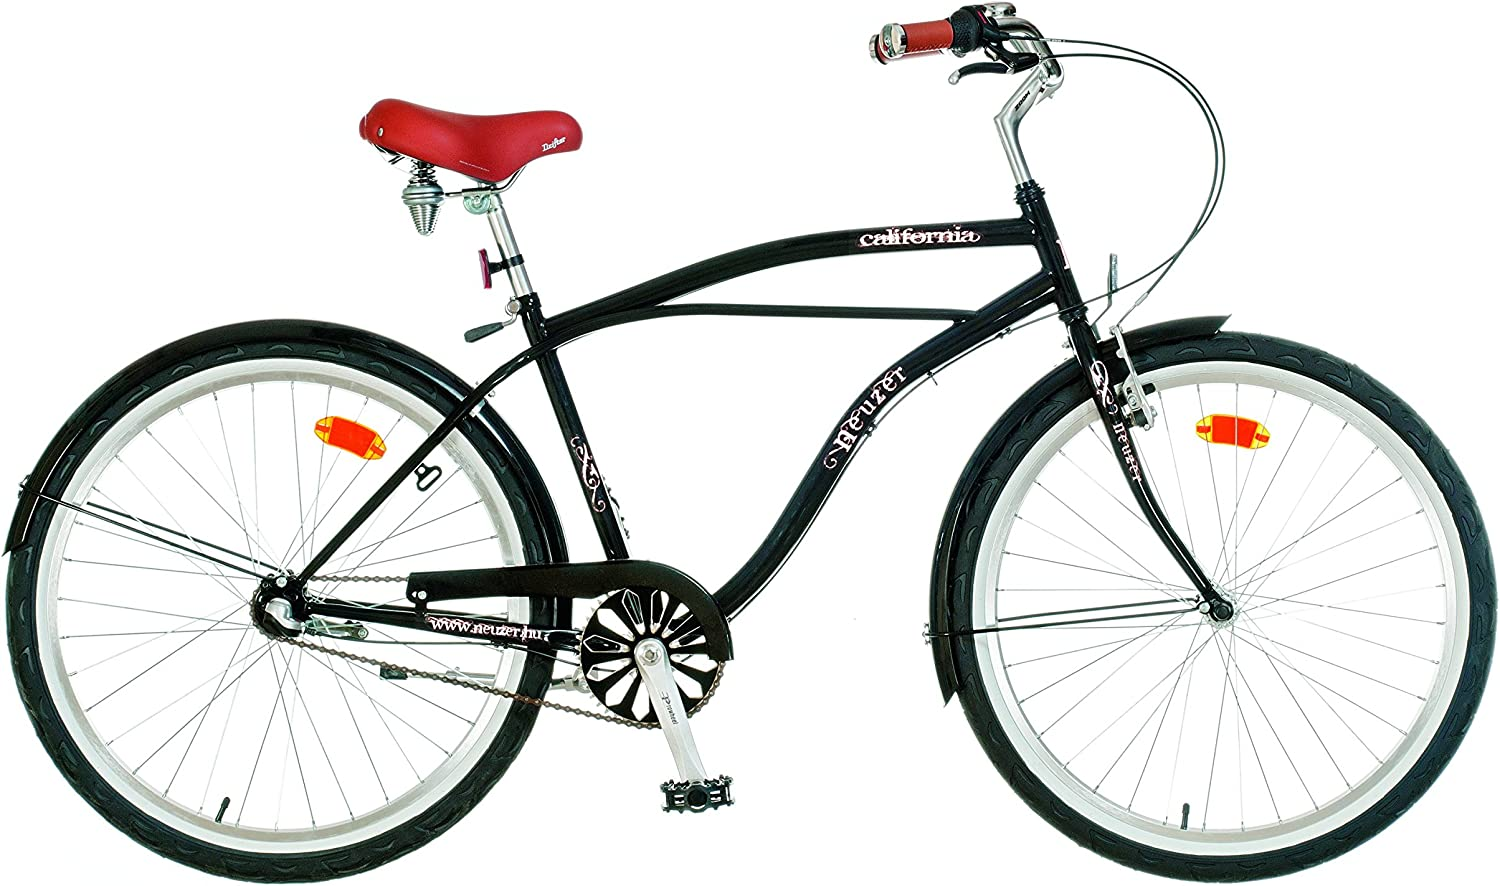 Bicicleta Custom Playera Modelo Cruiser California 3S: Amazon.es ...